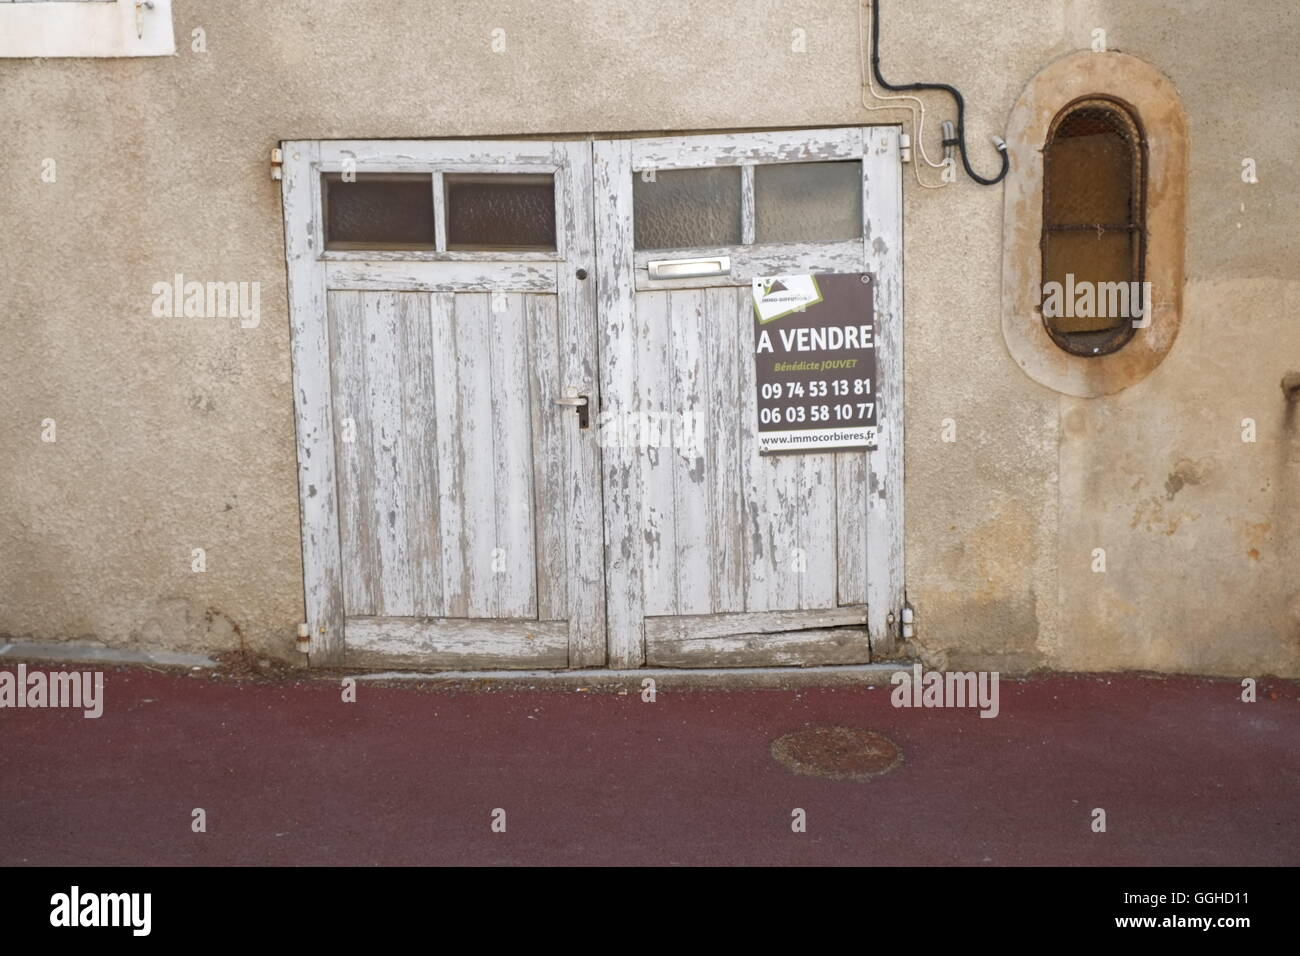 old character french architecture - Stock Image